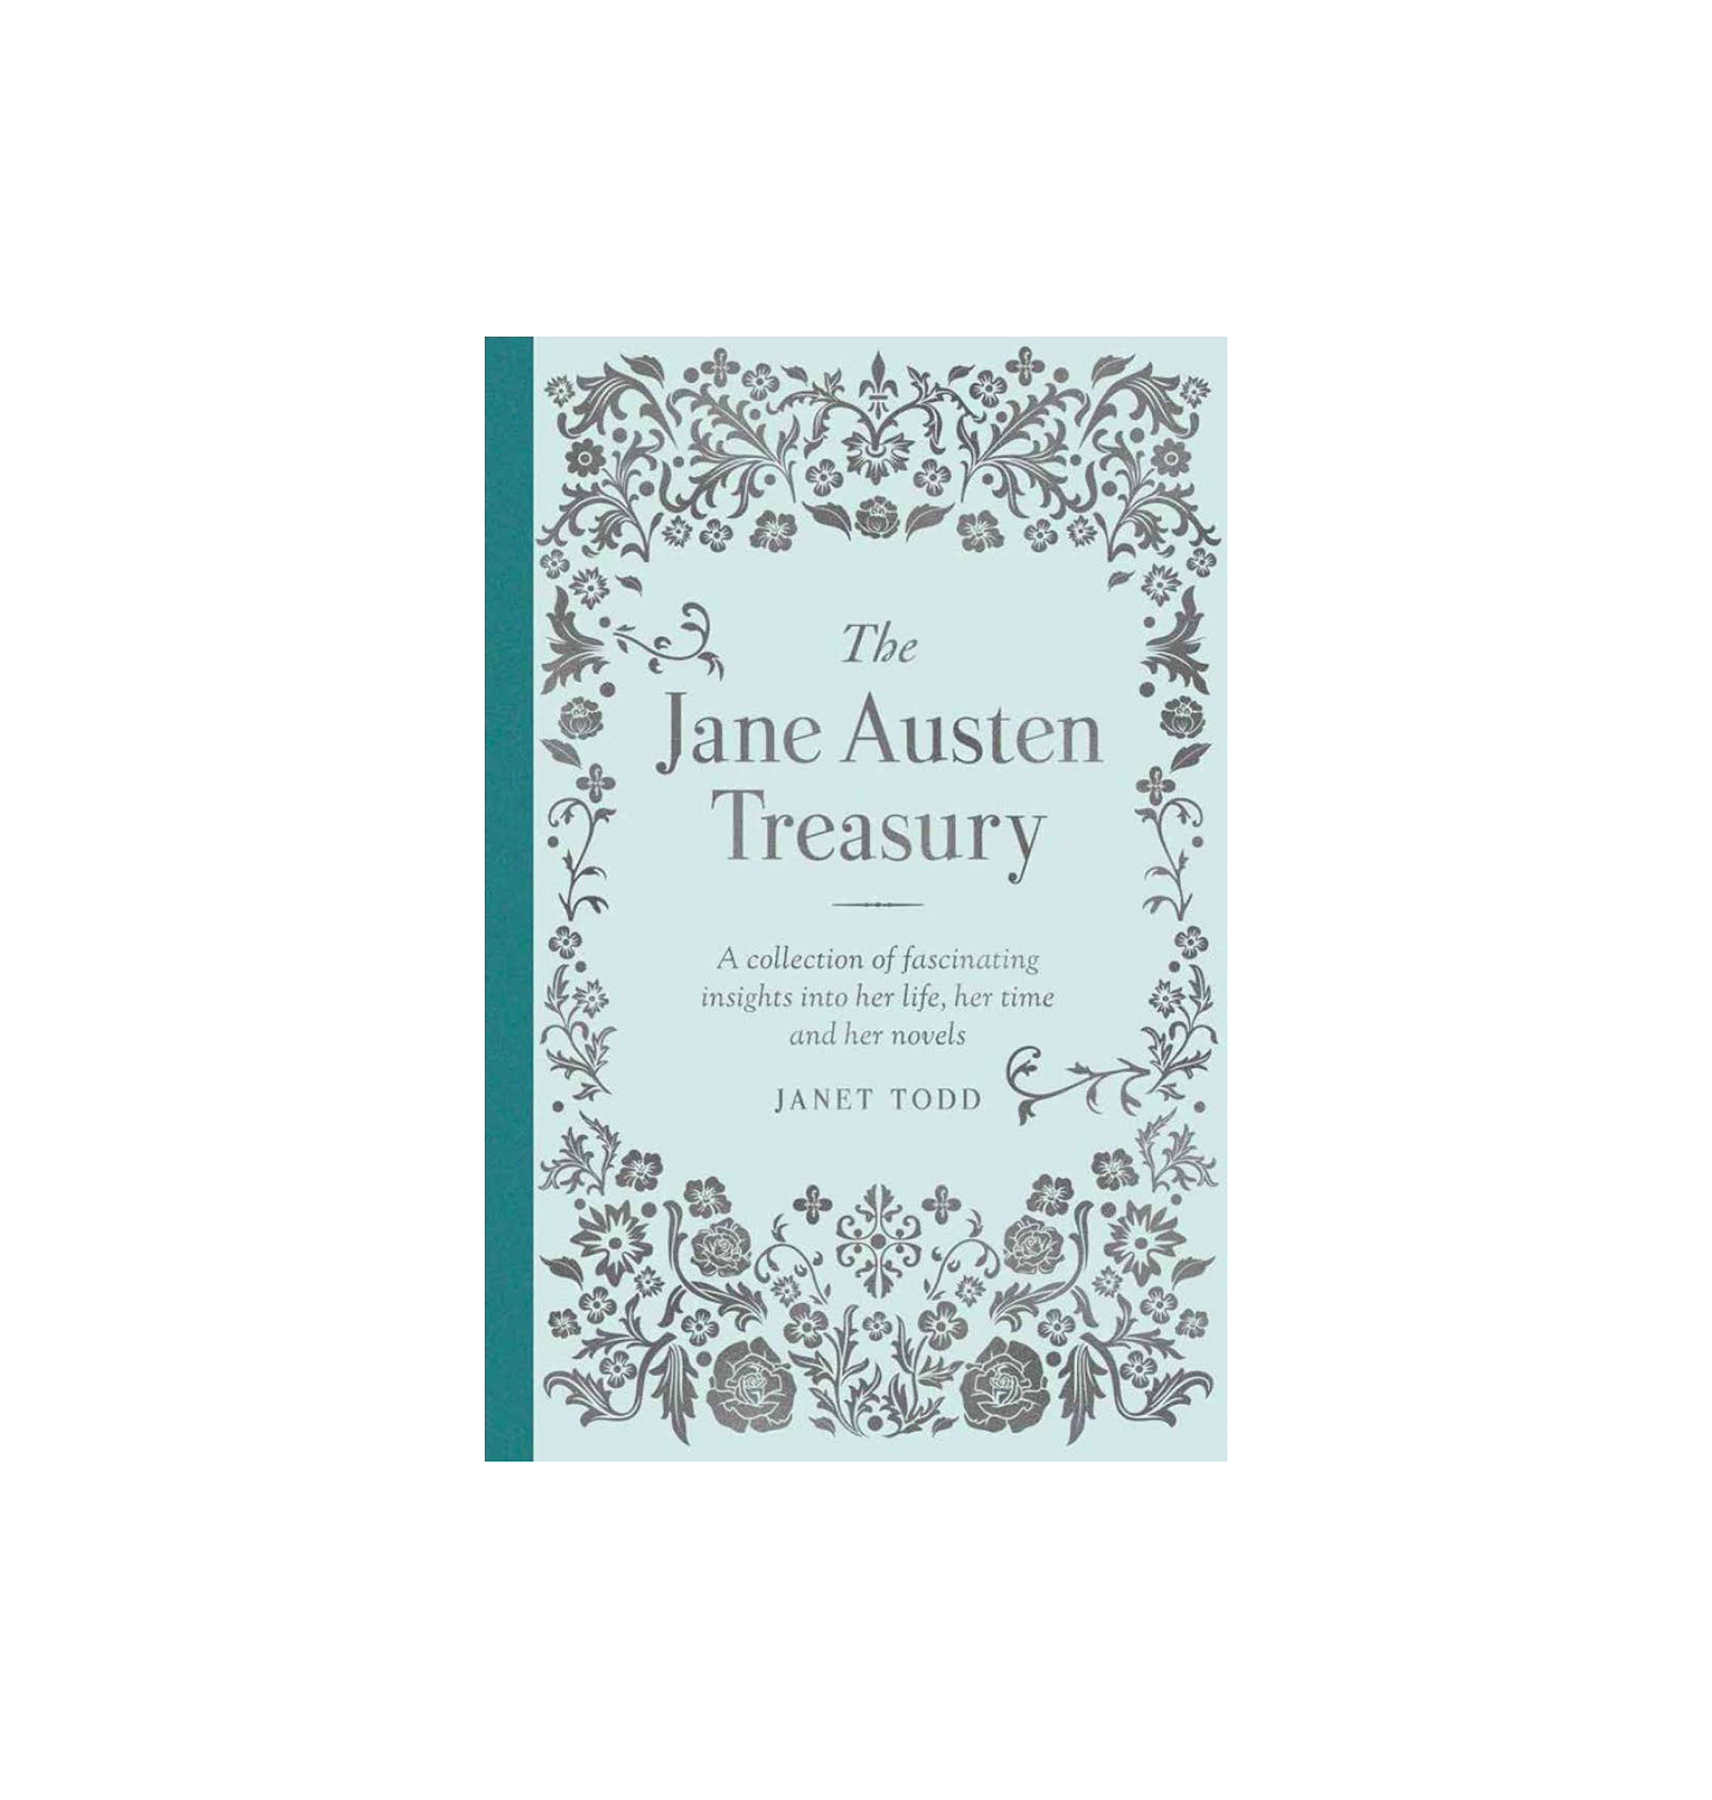 The Jane Austen Treasury: A Collection of Fascinating Insights into Her Life, Her Time and Her Novels, by Janet Todd